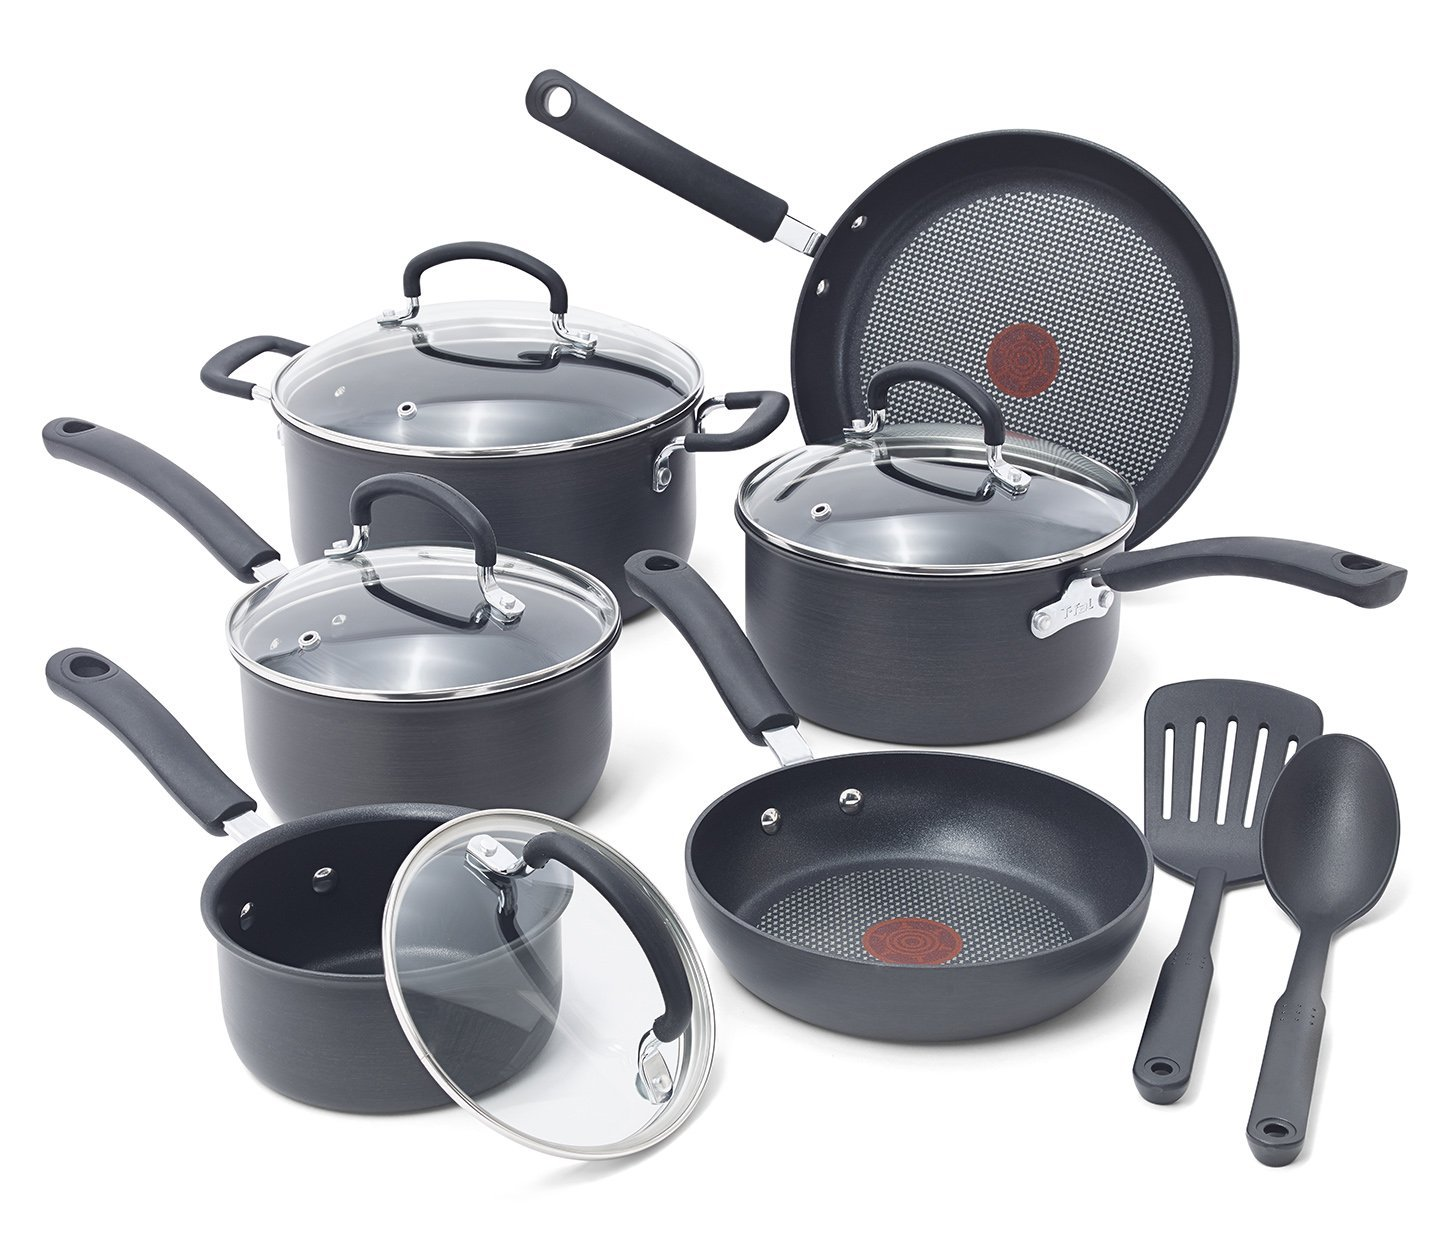 Amazon.com: Save 25% on T-fal Kitchen Products!